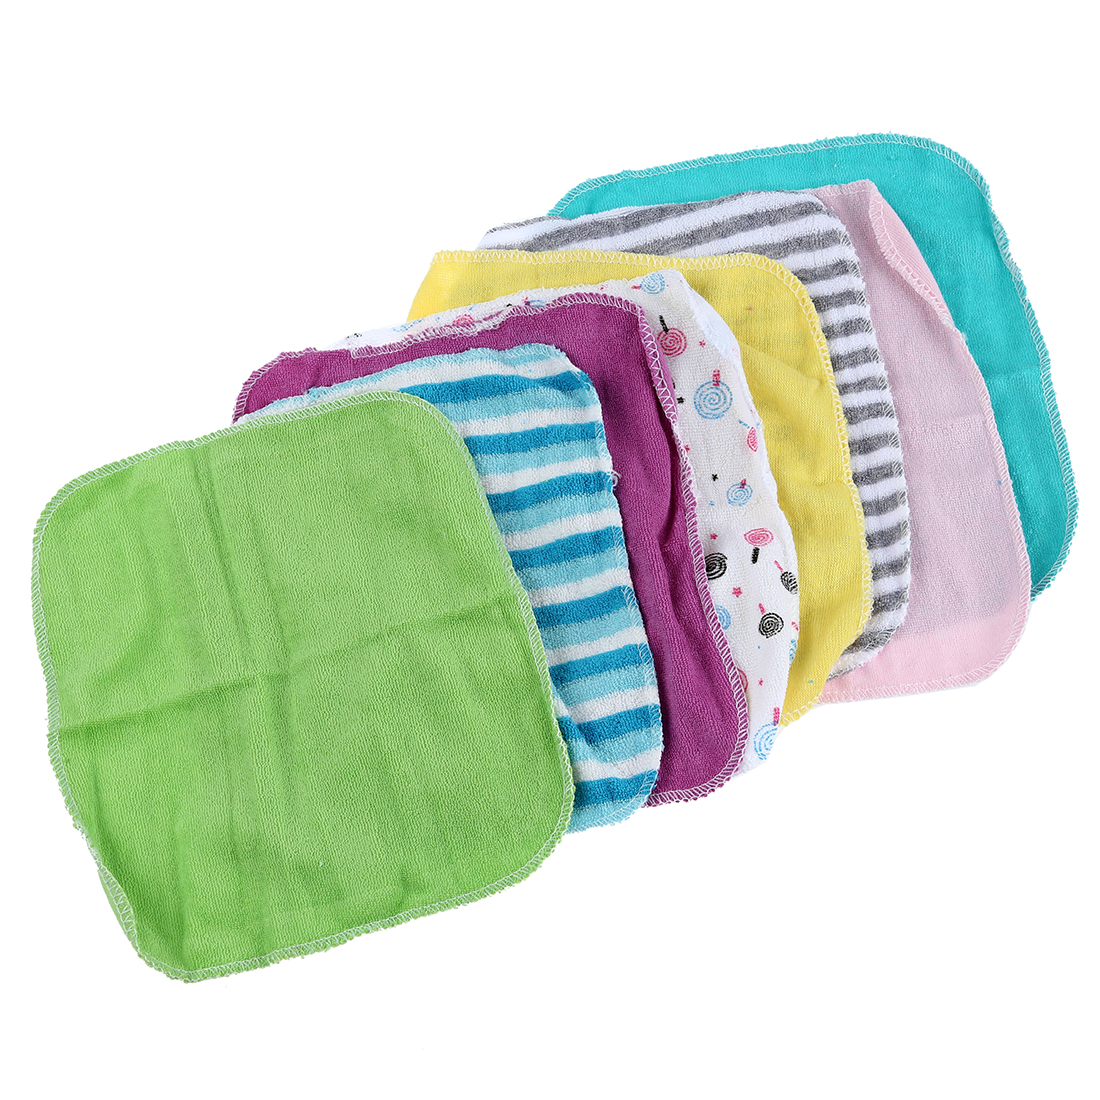 5 pack Baby Face Washers Hand Towels Cotton Wipe Wash Cloth 8pcs/Pack